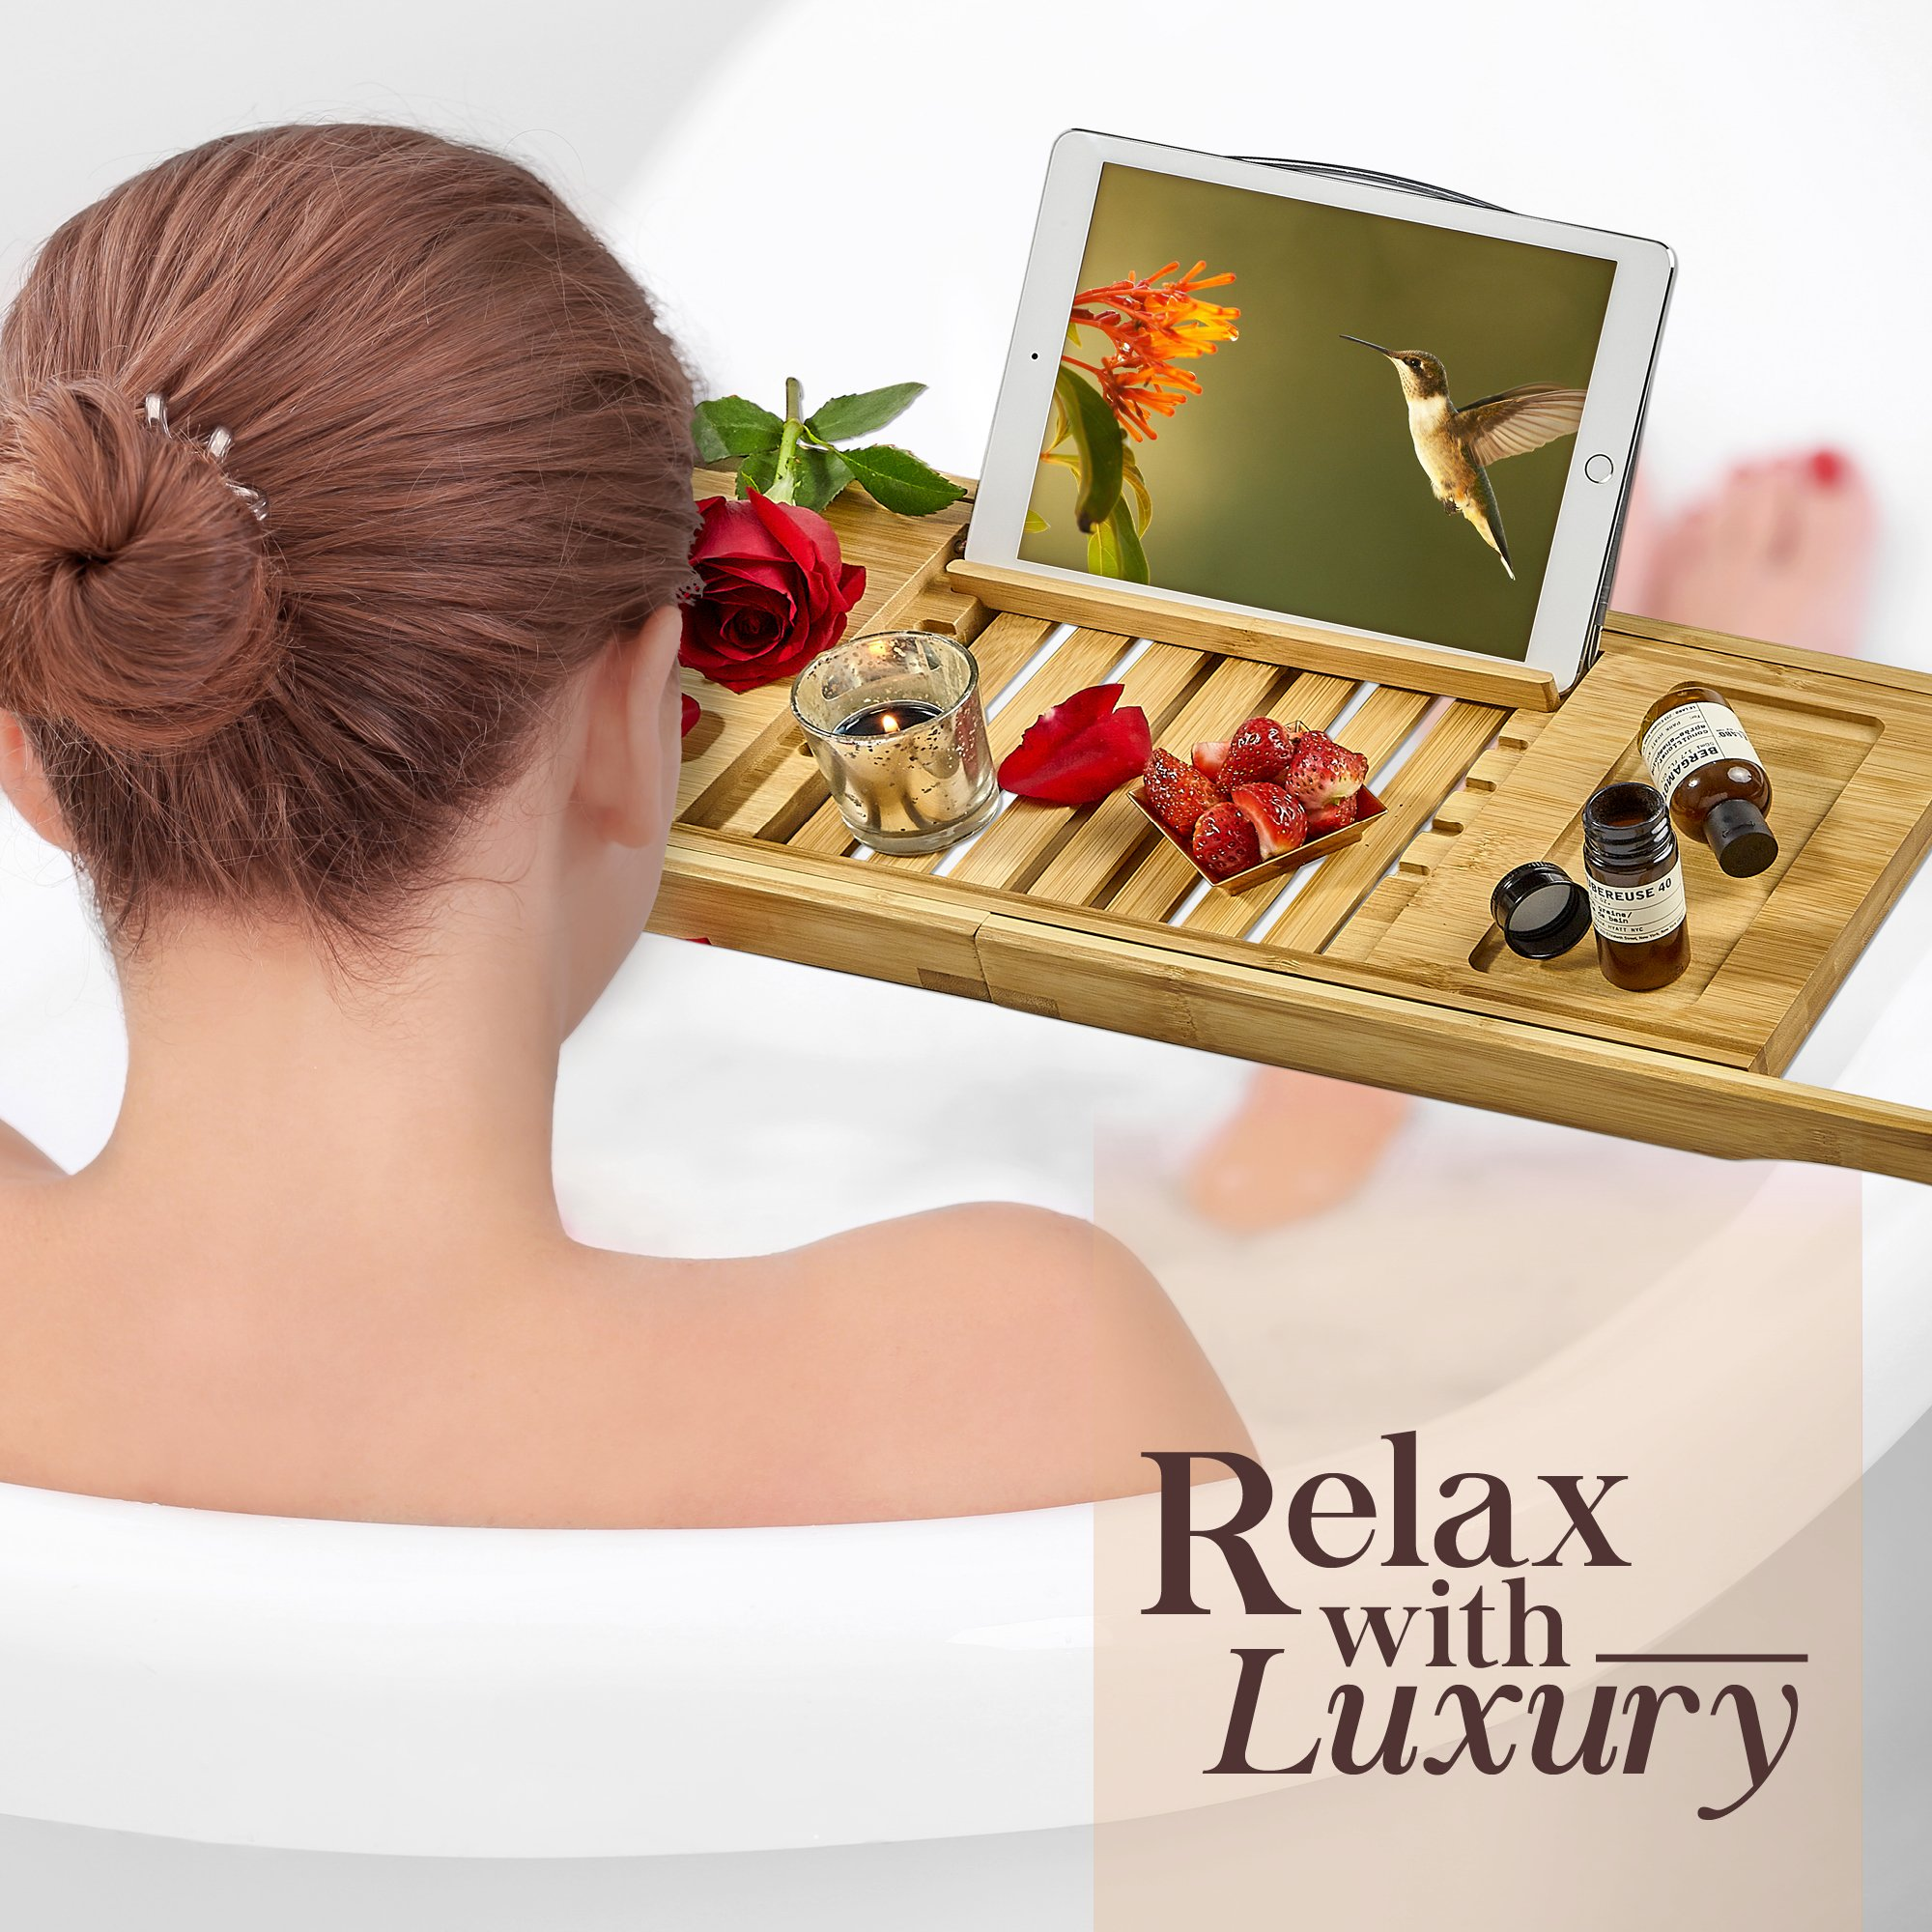 Tregini Luxury Bathtub Caddy - Extendable Bamboo Wood Bath Tray with Adjustable Book, iPad or Kindle Reading Rack - Wine Glass Holder - Cellphone or Tablet Slot by Tregini (Image #6)